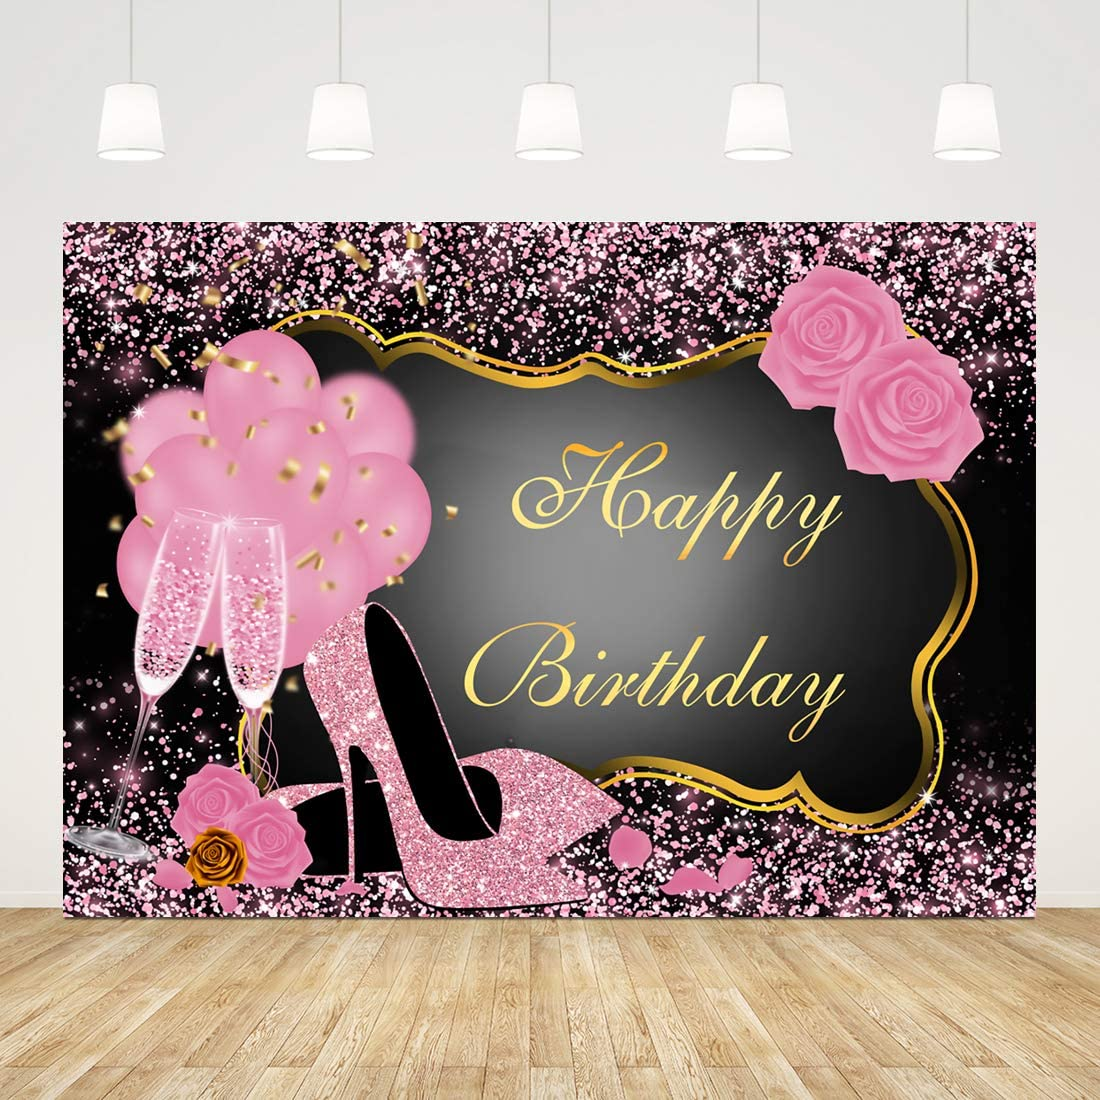 Happy Birthday Backdrop for Adult Party Pink Birthday Photography Background 7x5ft Glitter Happy Birthday Backdrop for Women Girls Princess Cake Table Banner Rose Gold 16th 20th 30th 50th Photo Props